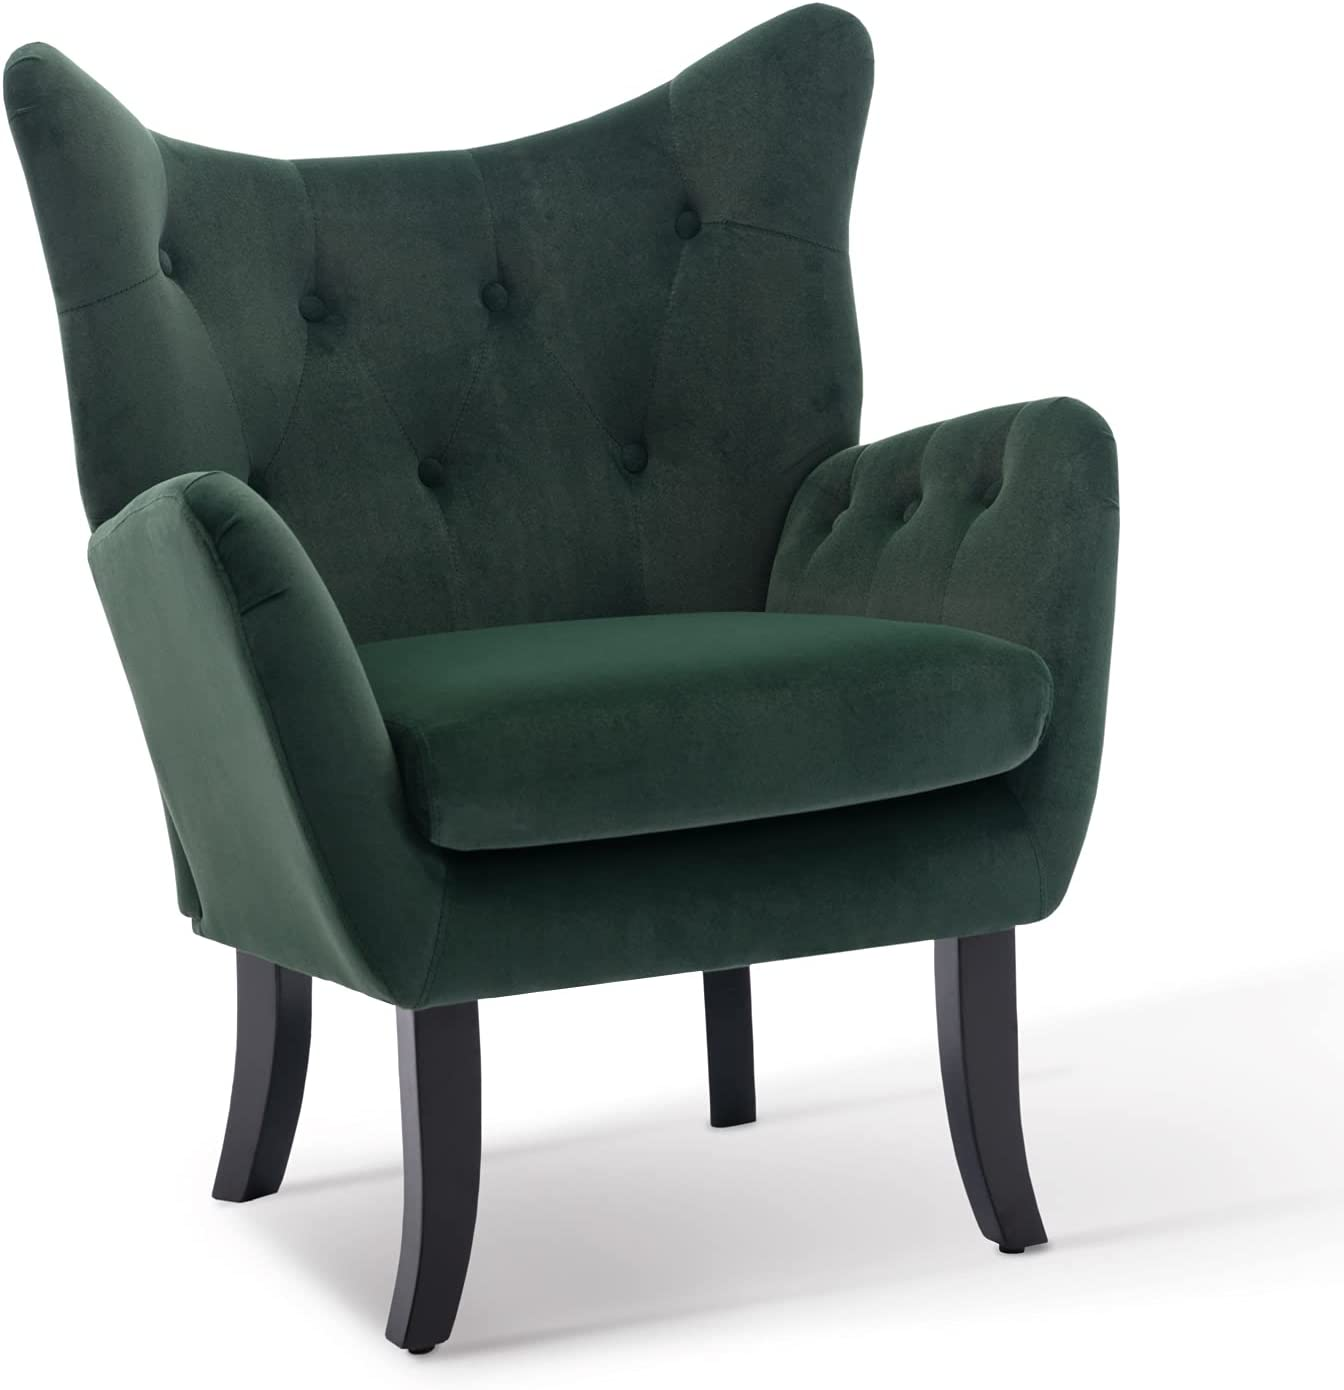 Accent Chair Velvet Wingback High quality Vanity Tufted A Modern Button 2021 model